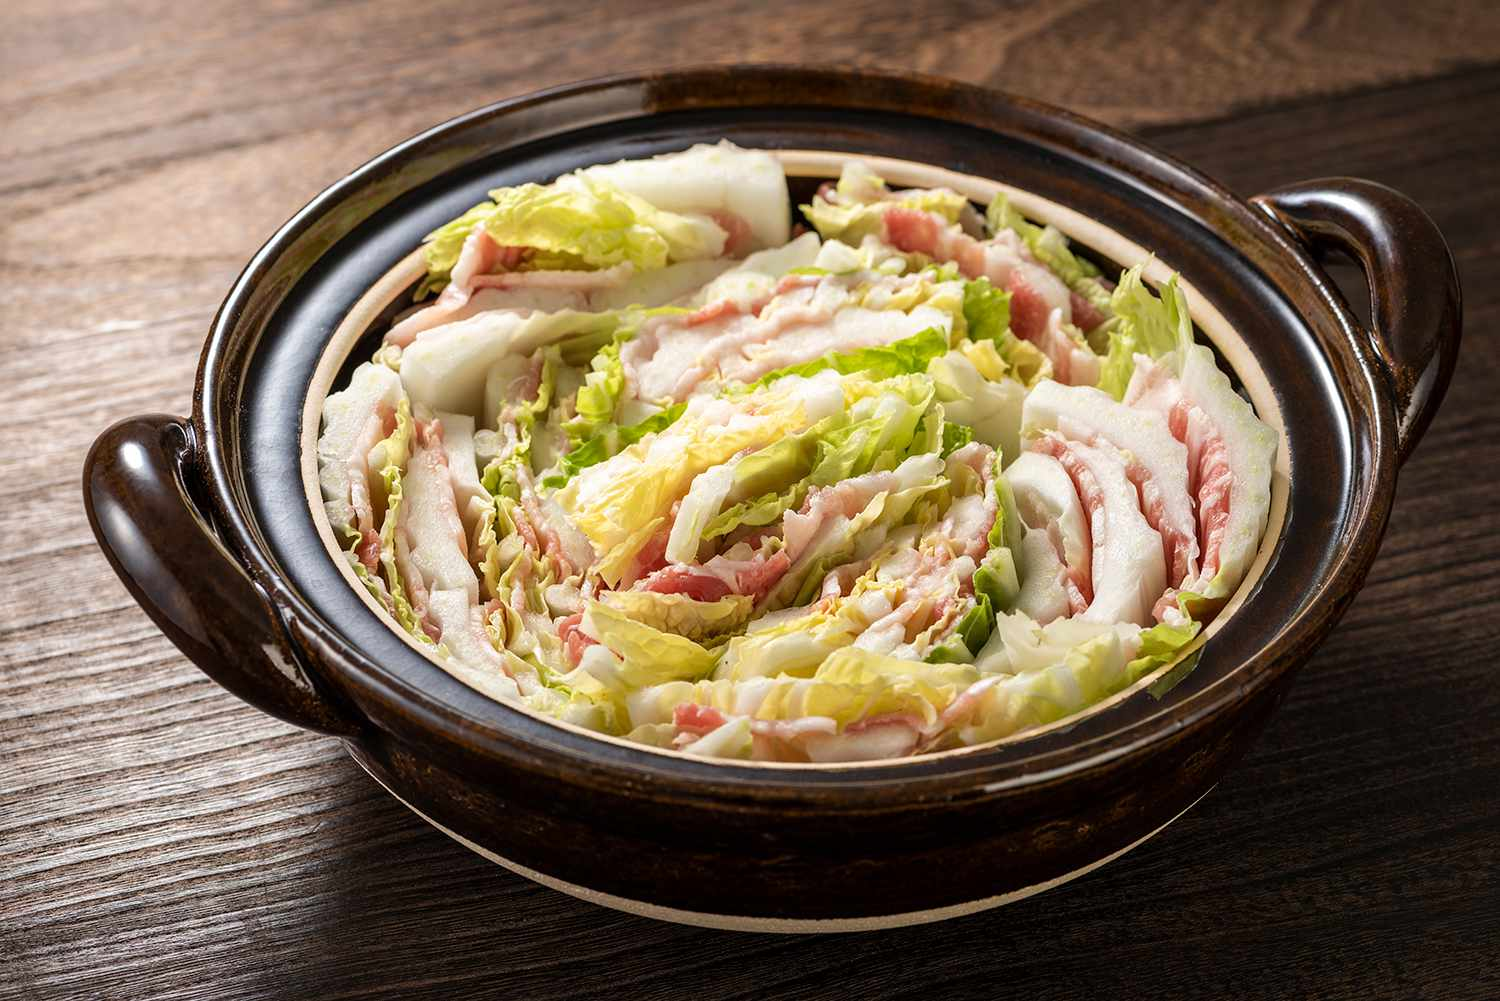 Layered pot of Chinese cabbage and pork roses